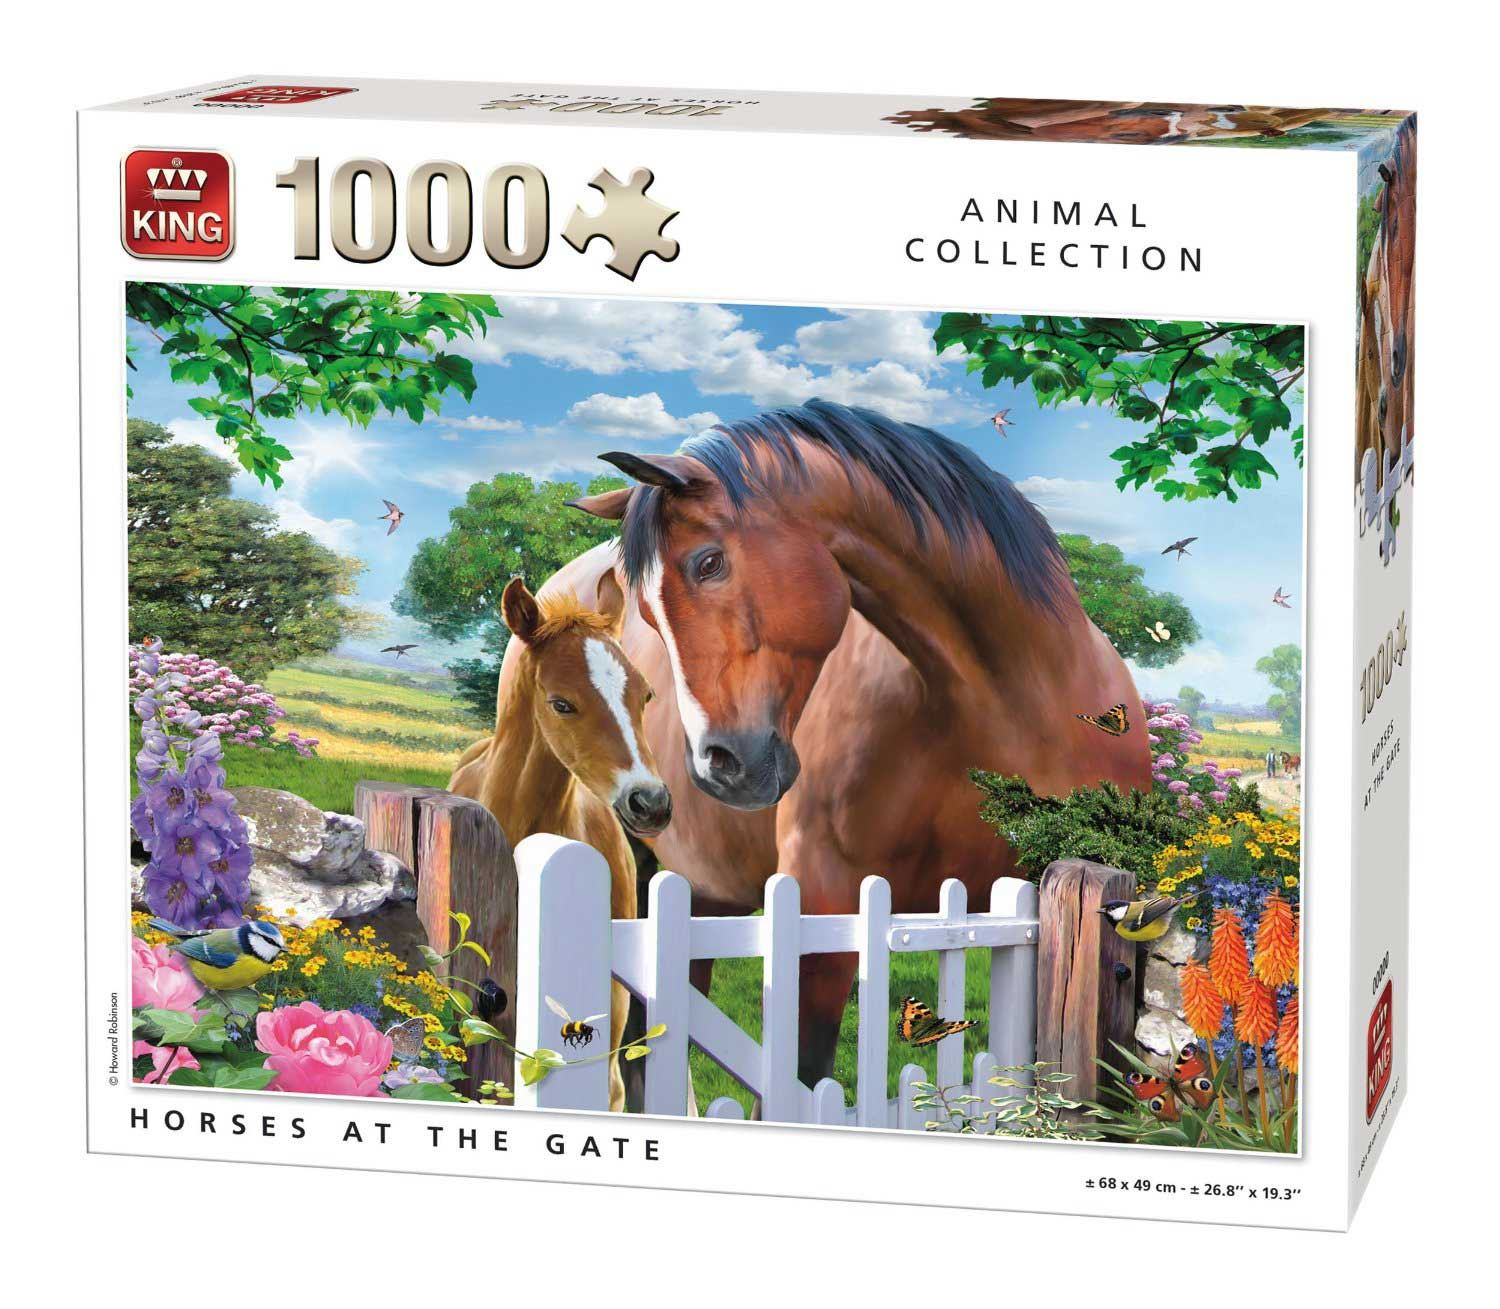 King Horses At The Gate Jigsaw Puzzle (1000 Pieces)